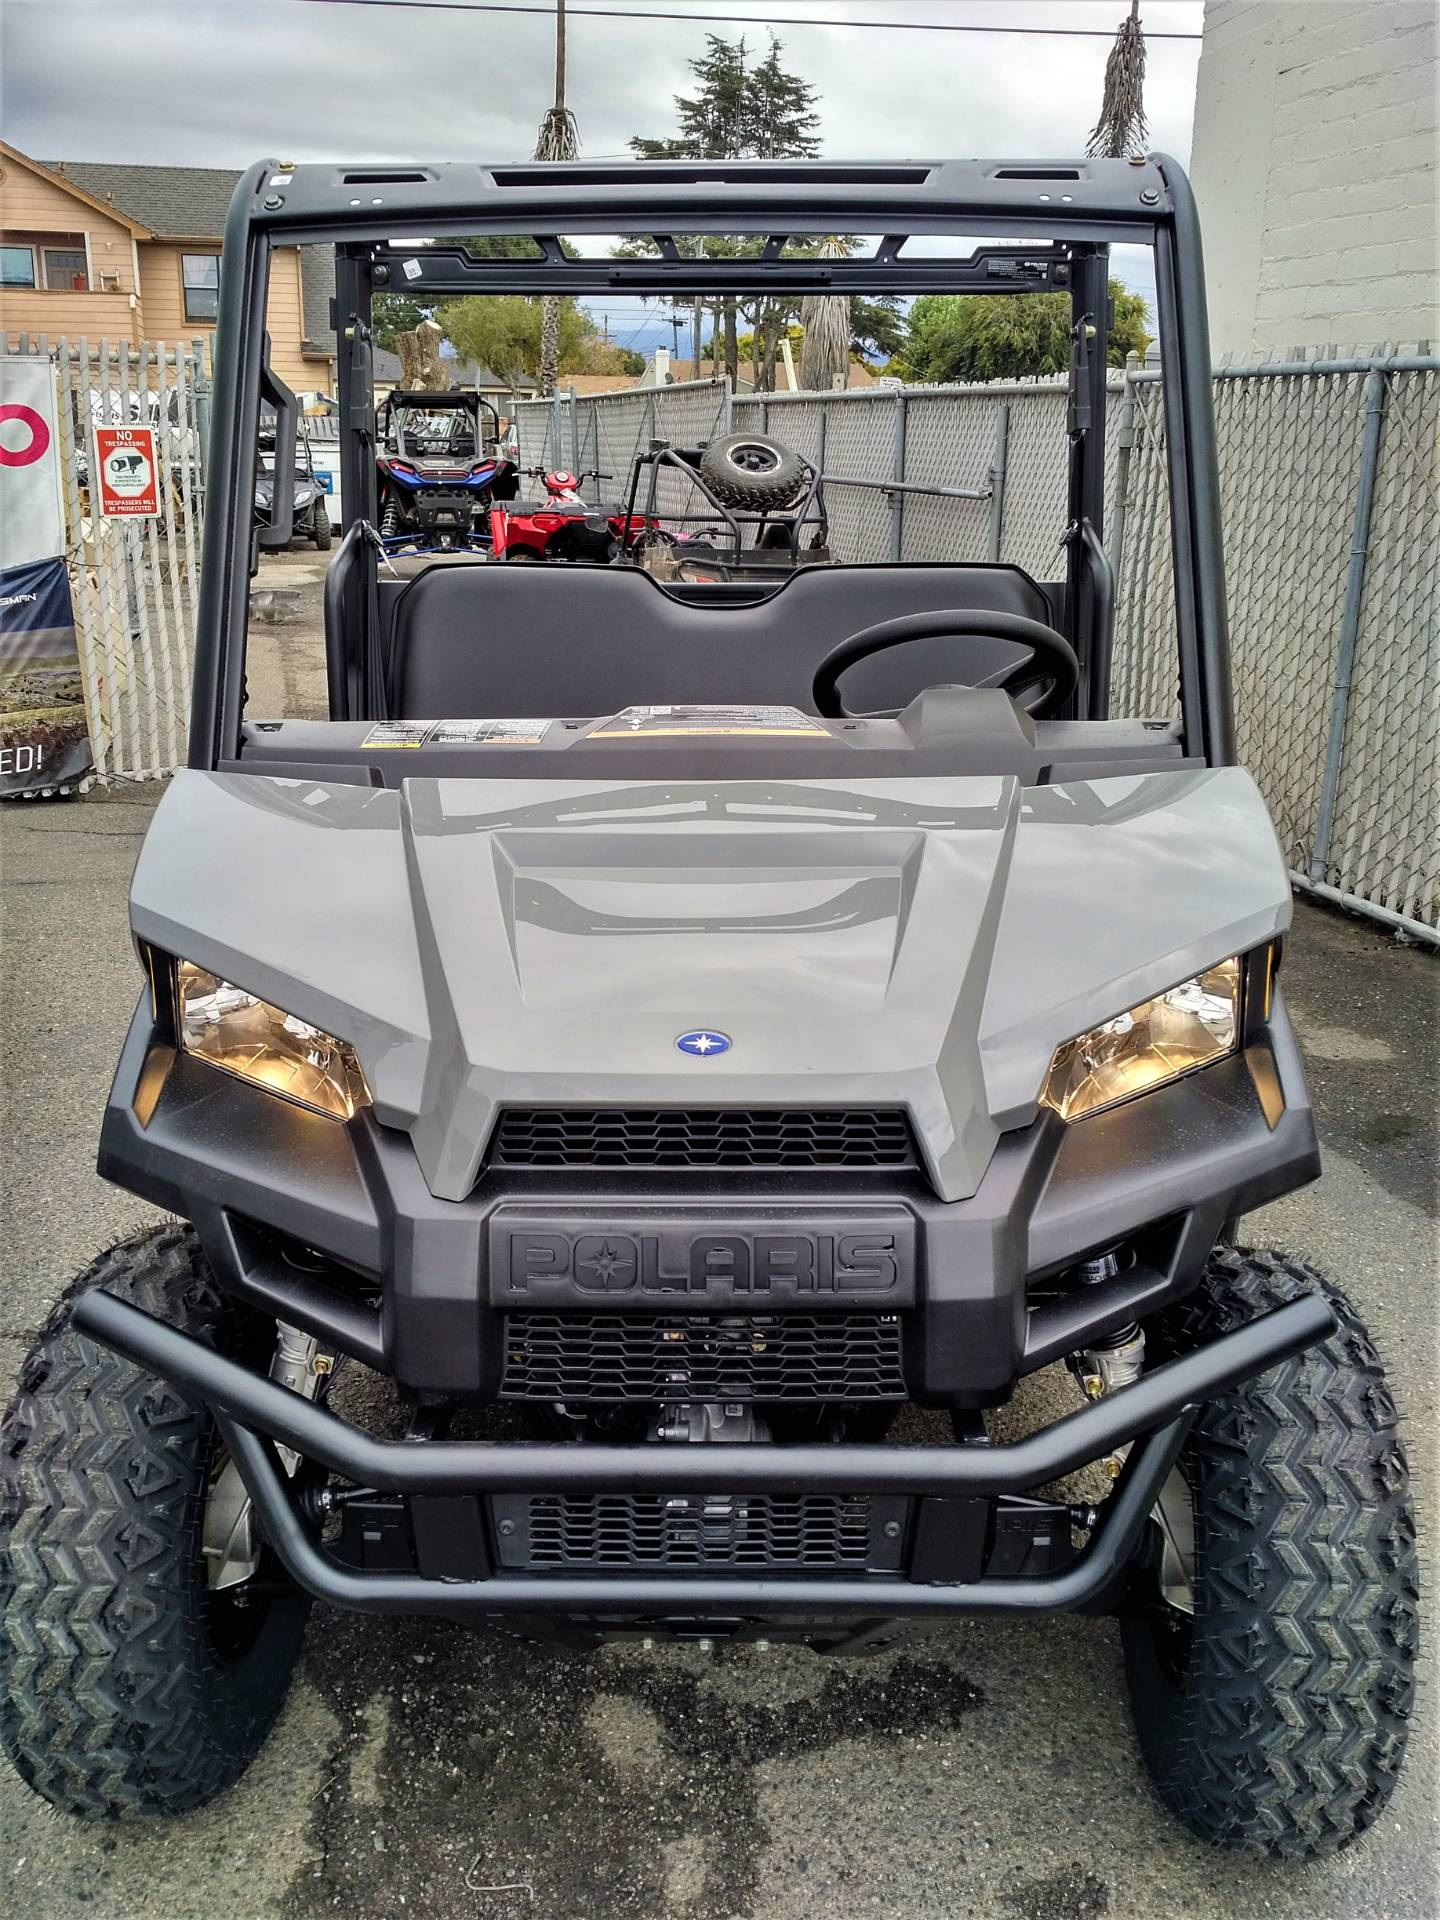 new 2019 polaris ranger ev powersports in salinas ca. Black Bedroom Furniture Sets. Home Design Ideas